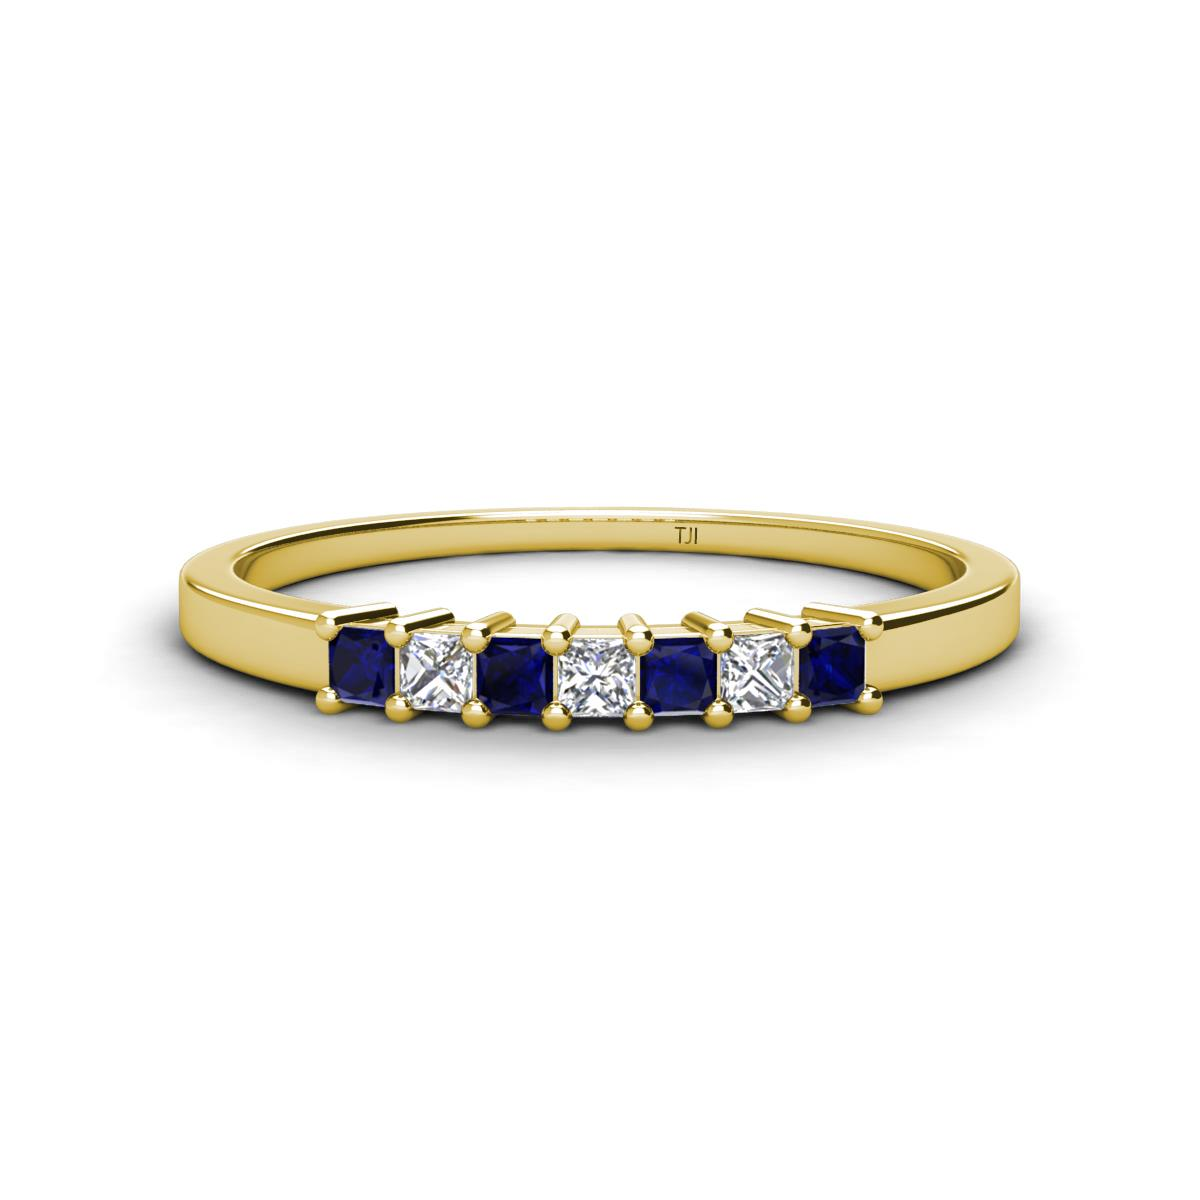 Erica 200 mm Blue Sapphire and Diamond Wedding Band Blue